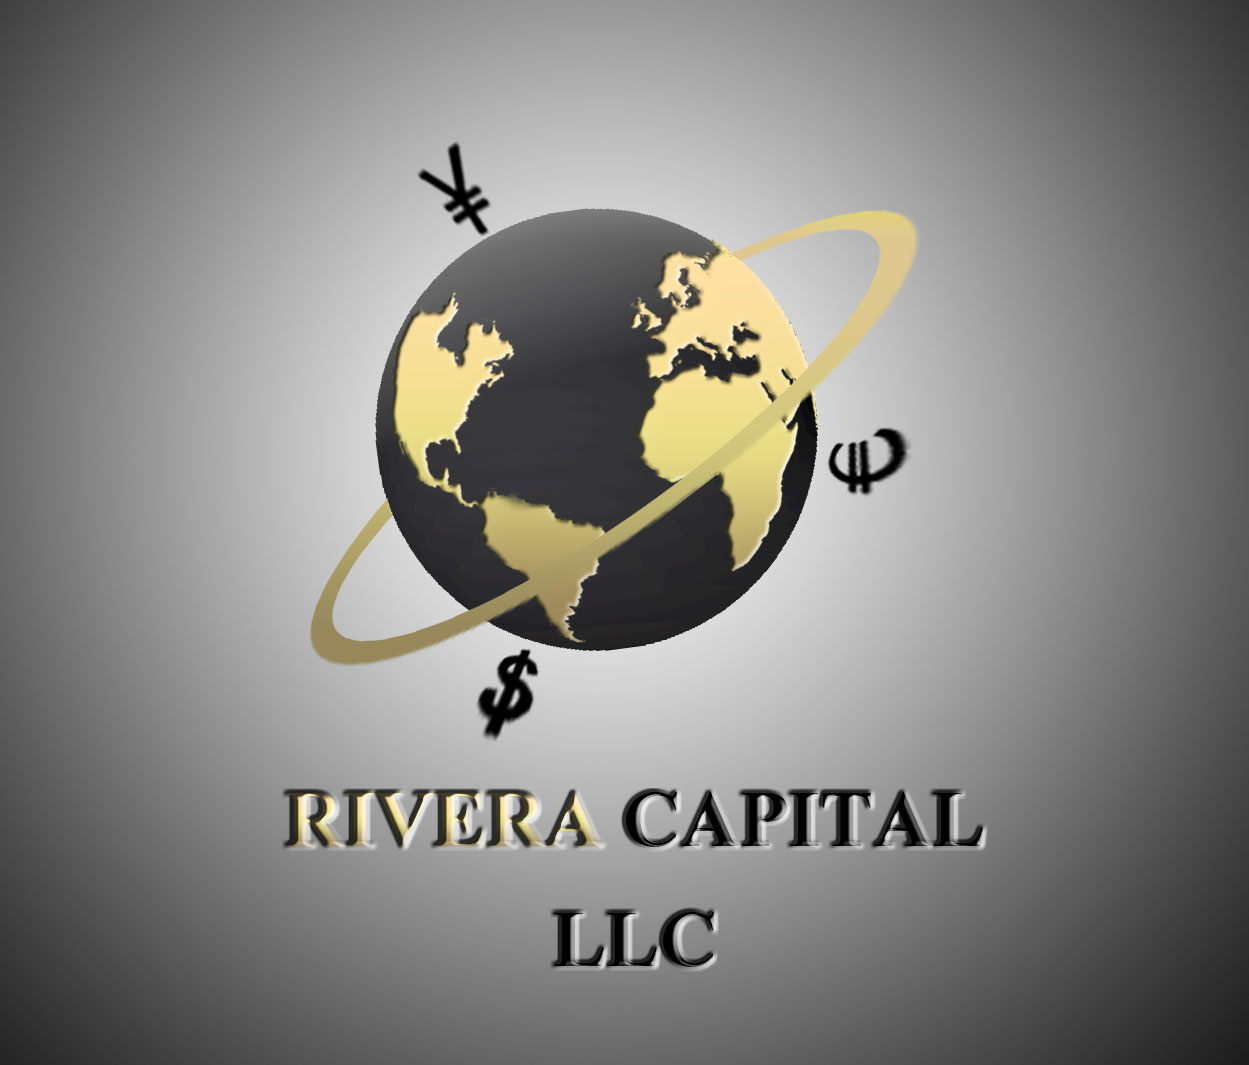 Logo Design by Mythos Designs - Entry No. 93 in the Logo Design Contest Logo Design Needed for Exciting New Company Rivera Capital LLC LLC.